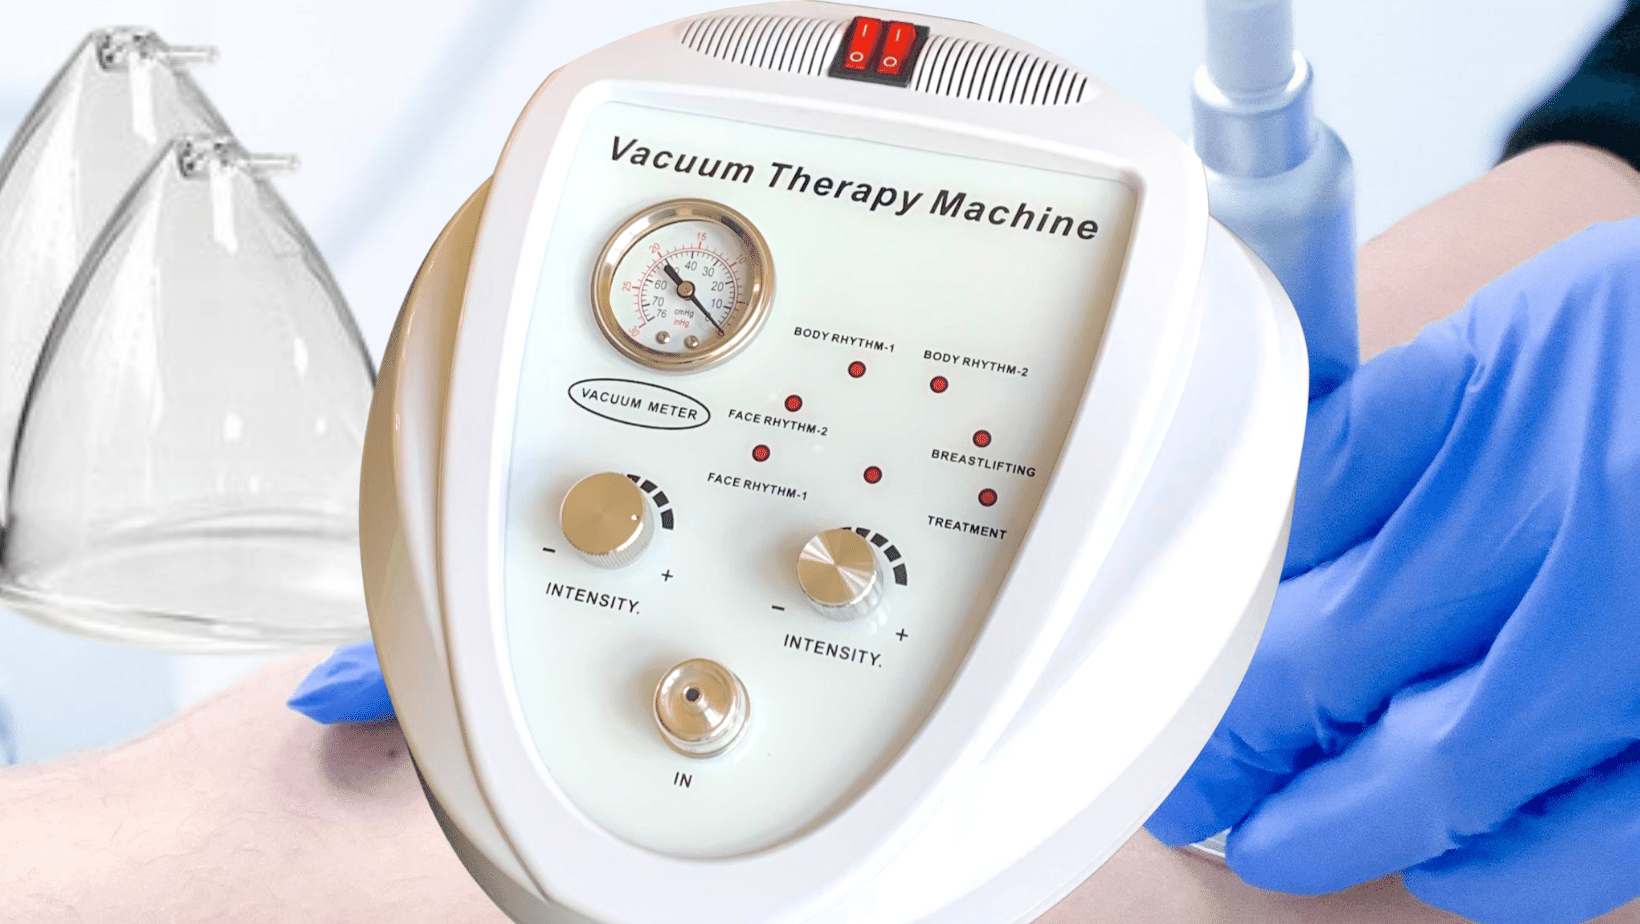 Vacuum Therapy 4-in-1 Masterclass: The Comprehensive Blueprint to Implement, Treat, Sell & Profit within 30 days